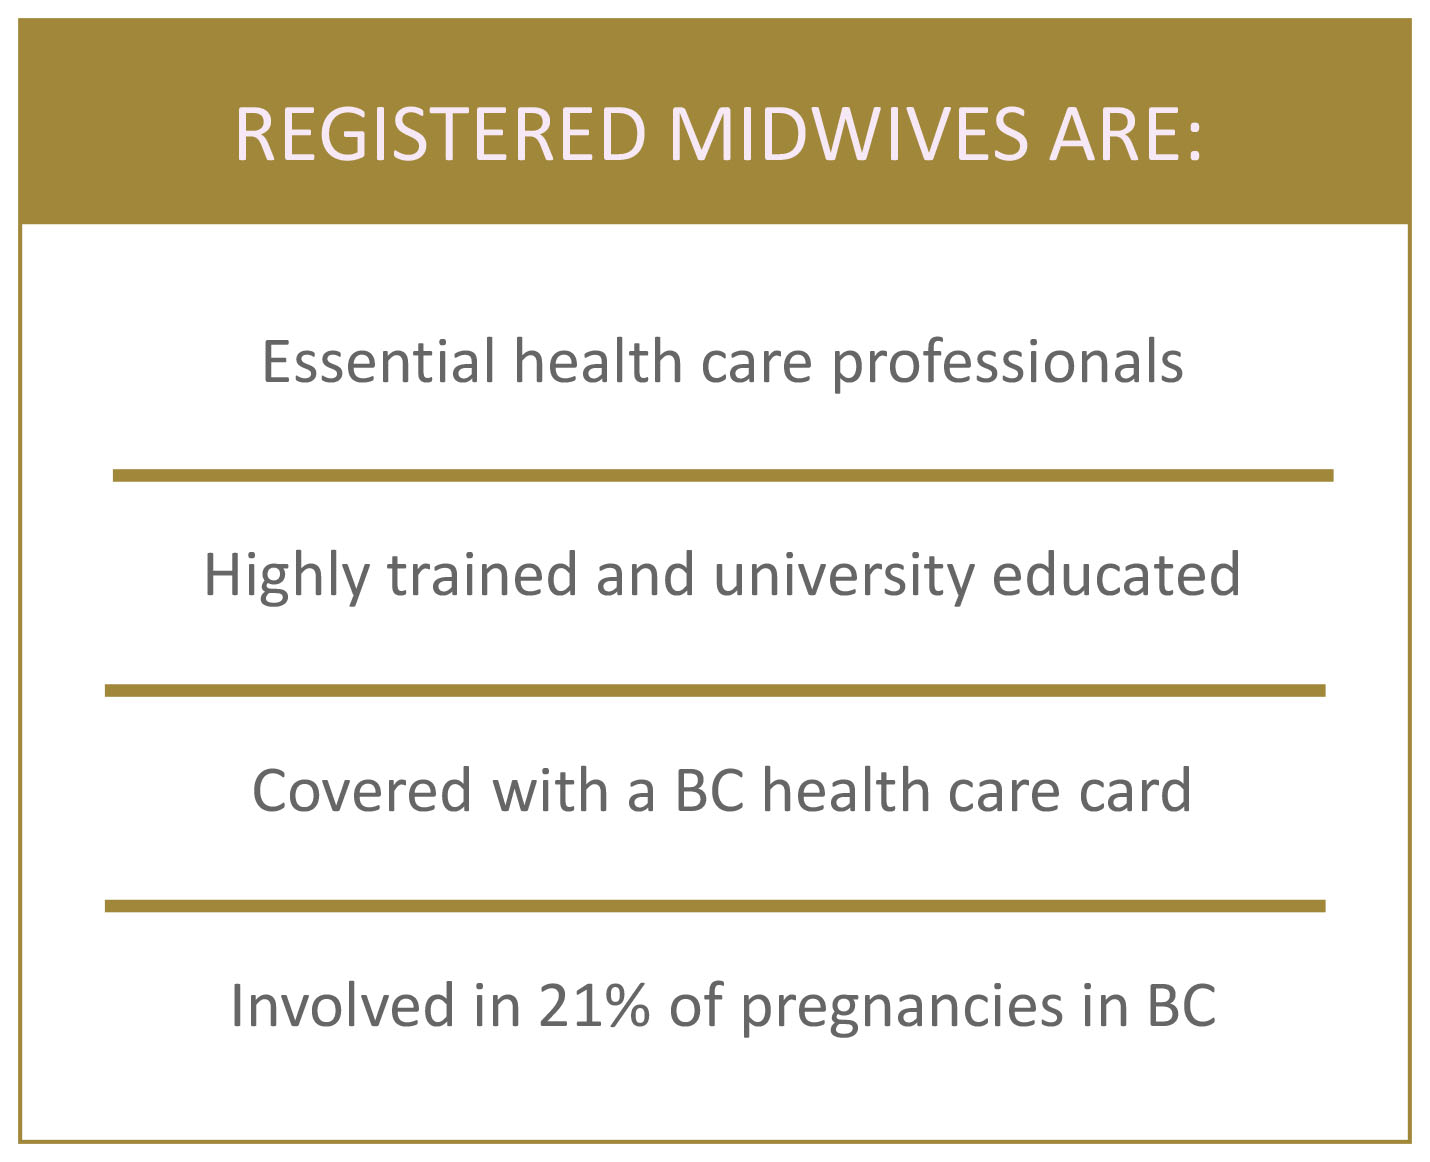 Midwives_are_-_2.jpg